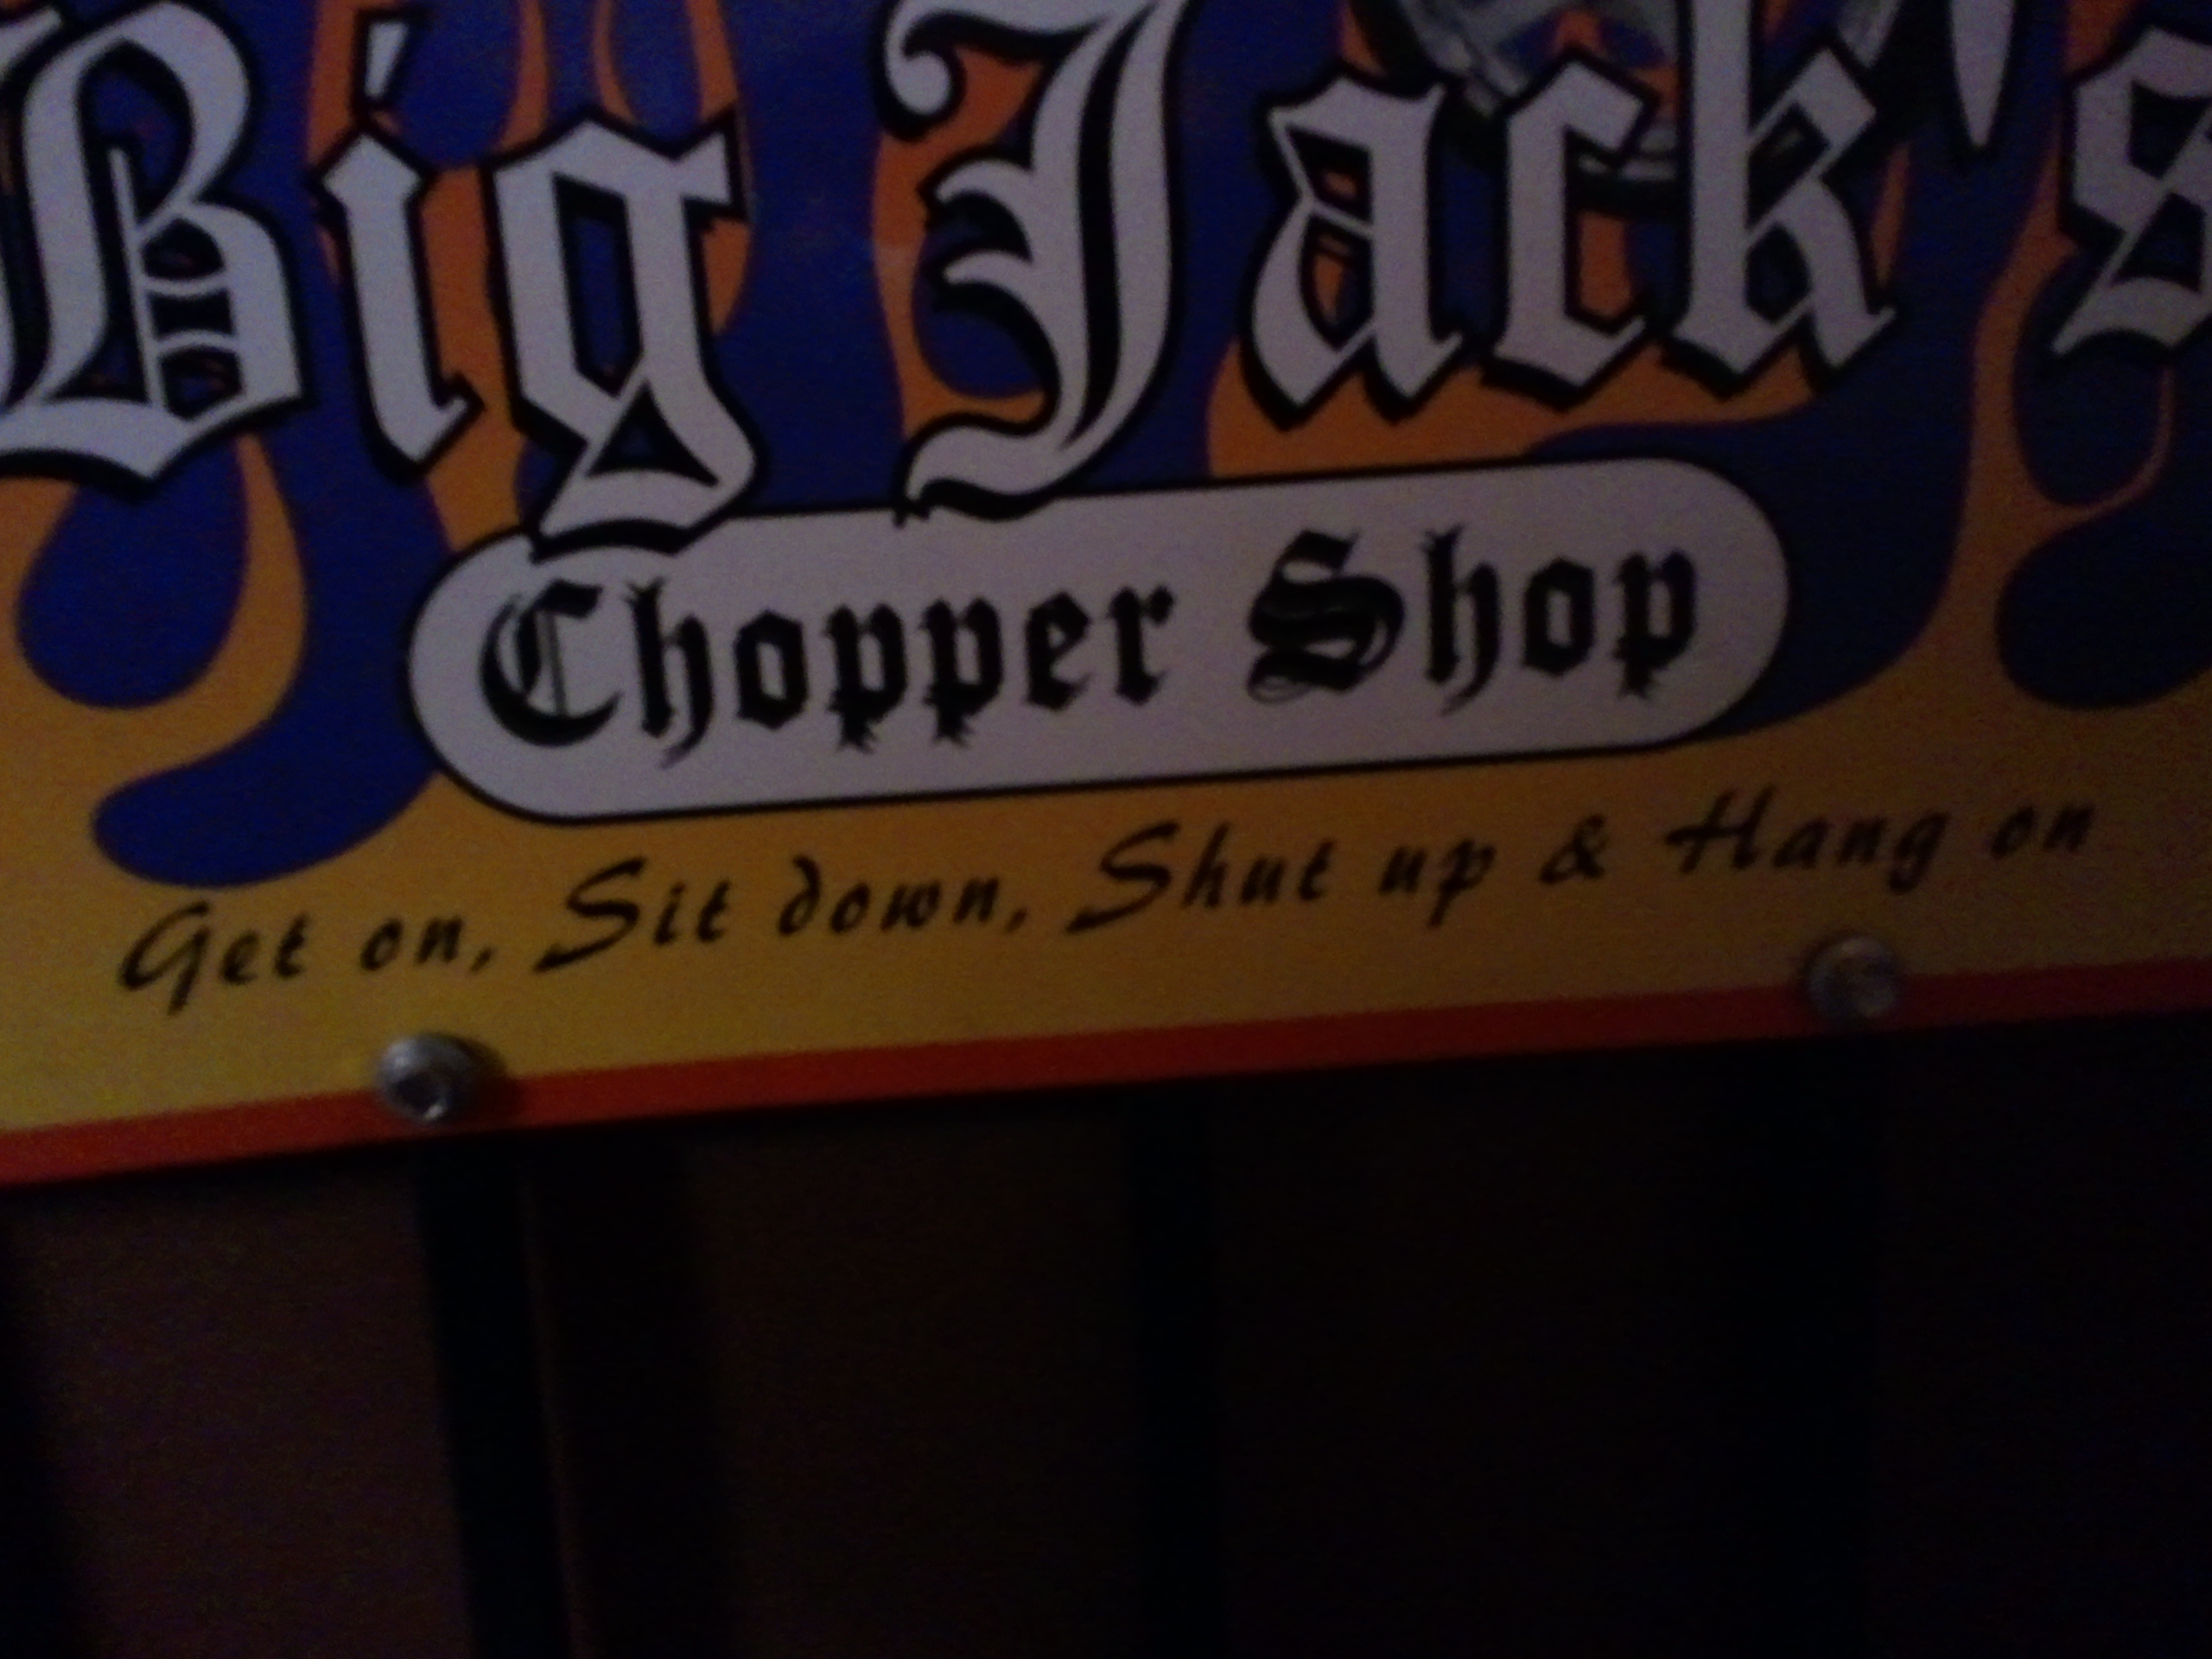 Next time you're in Sierra Vista, don't forget to visit Big Jack's!